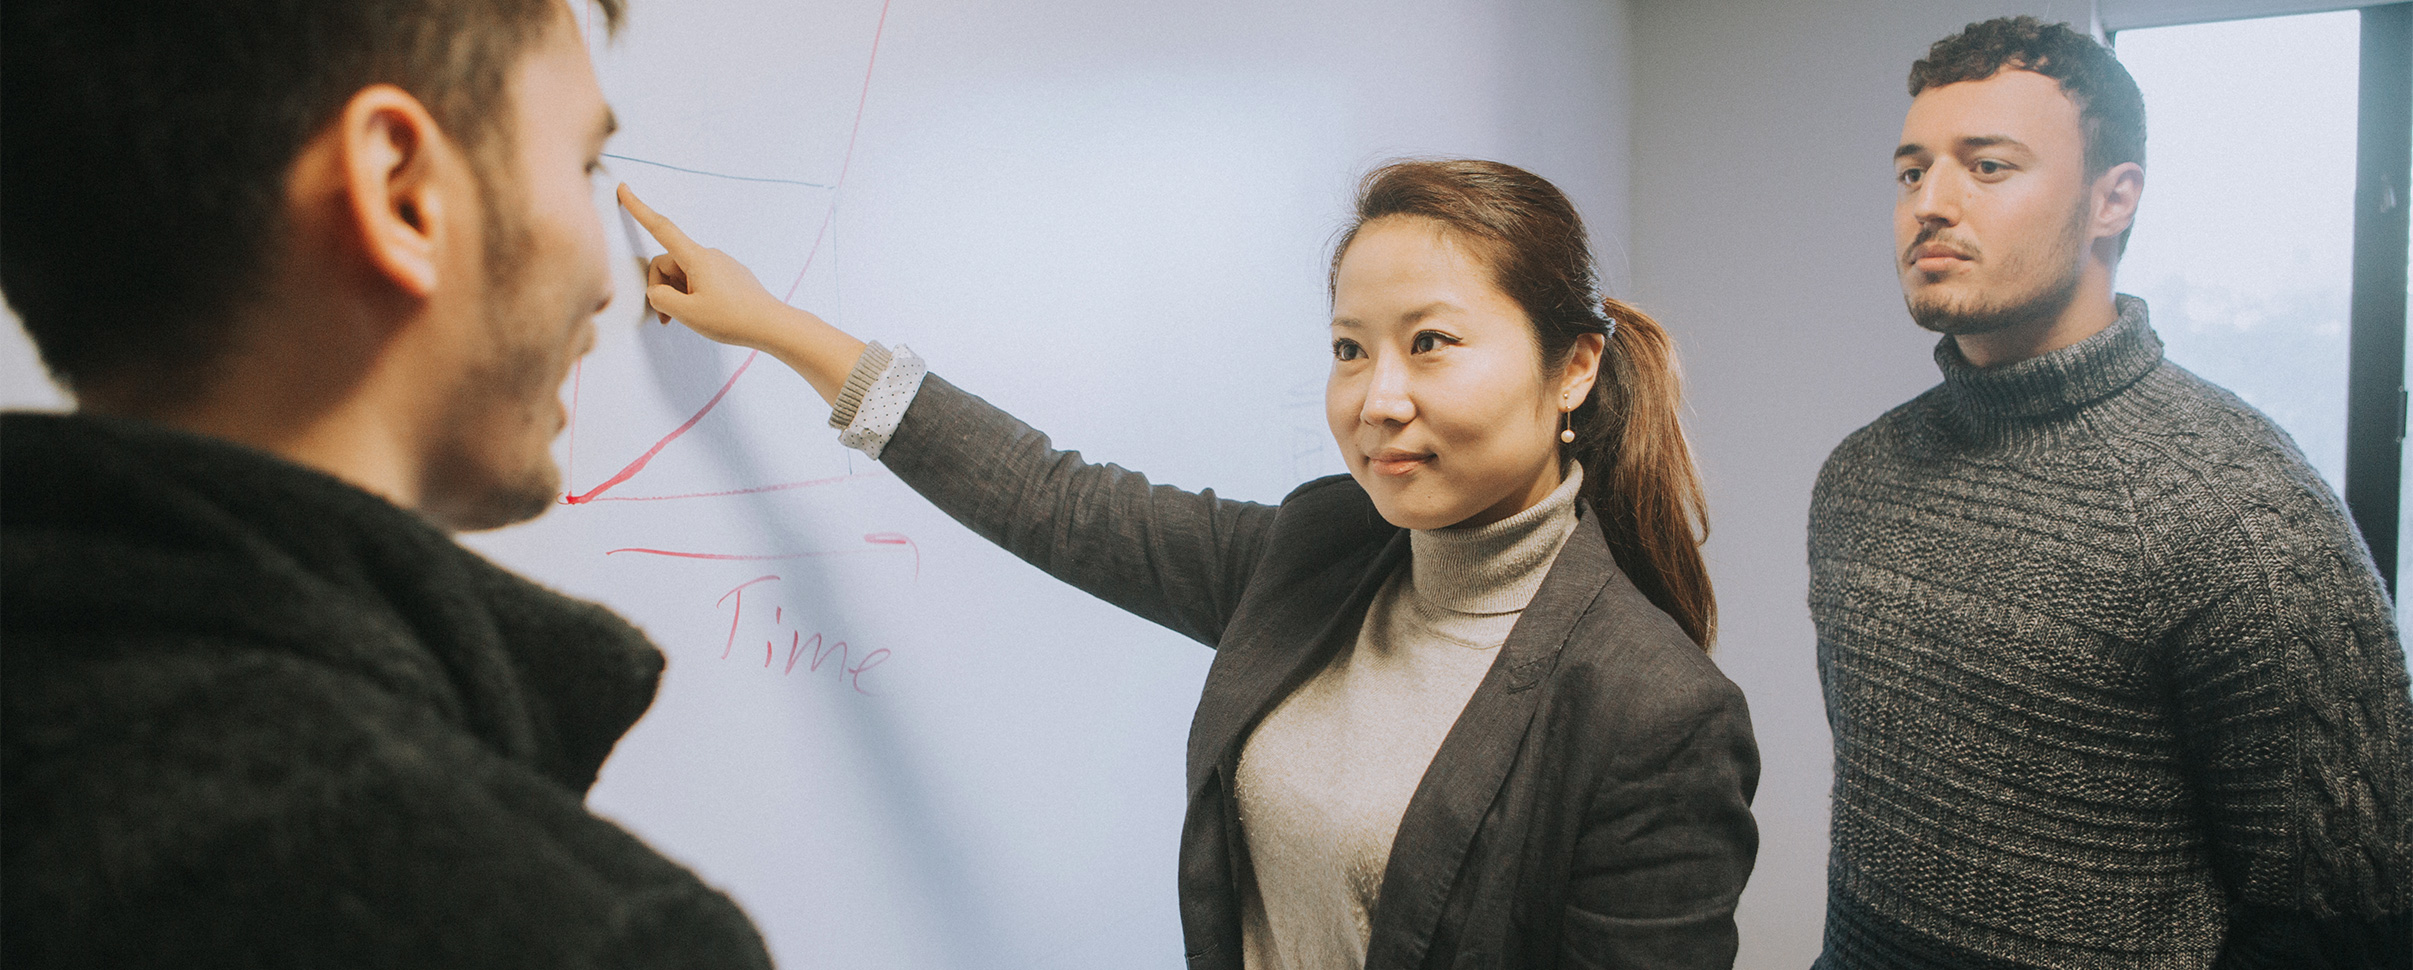 Professor pointing at white board